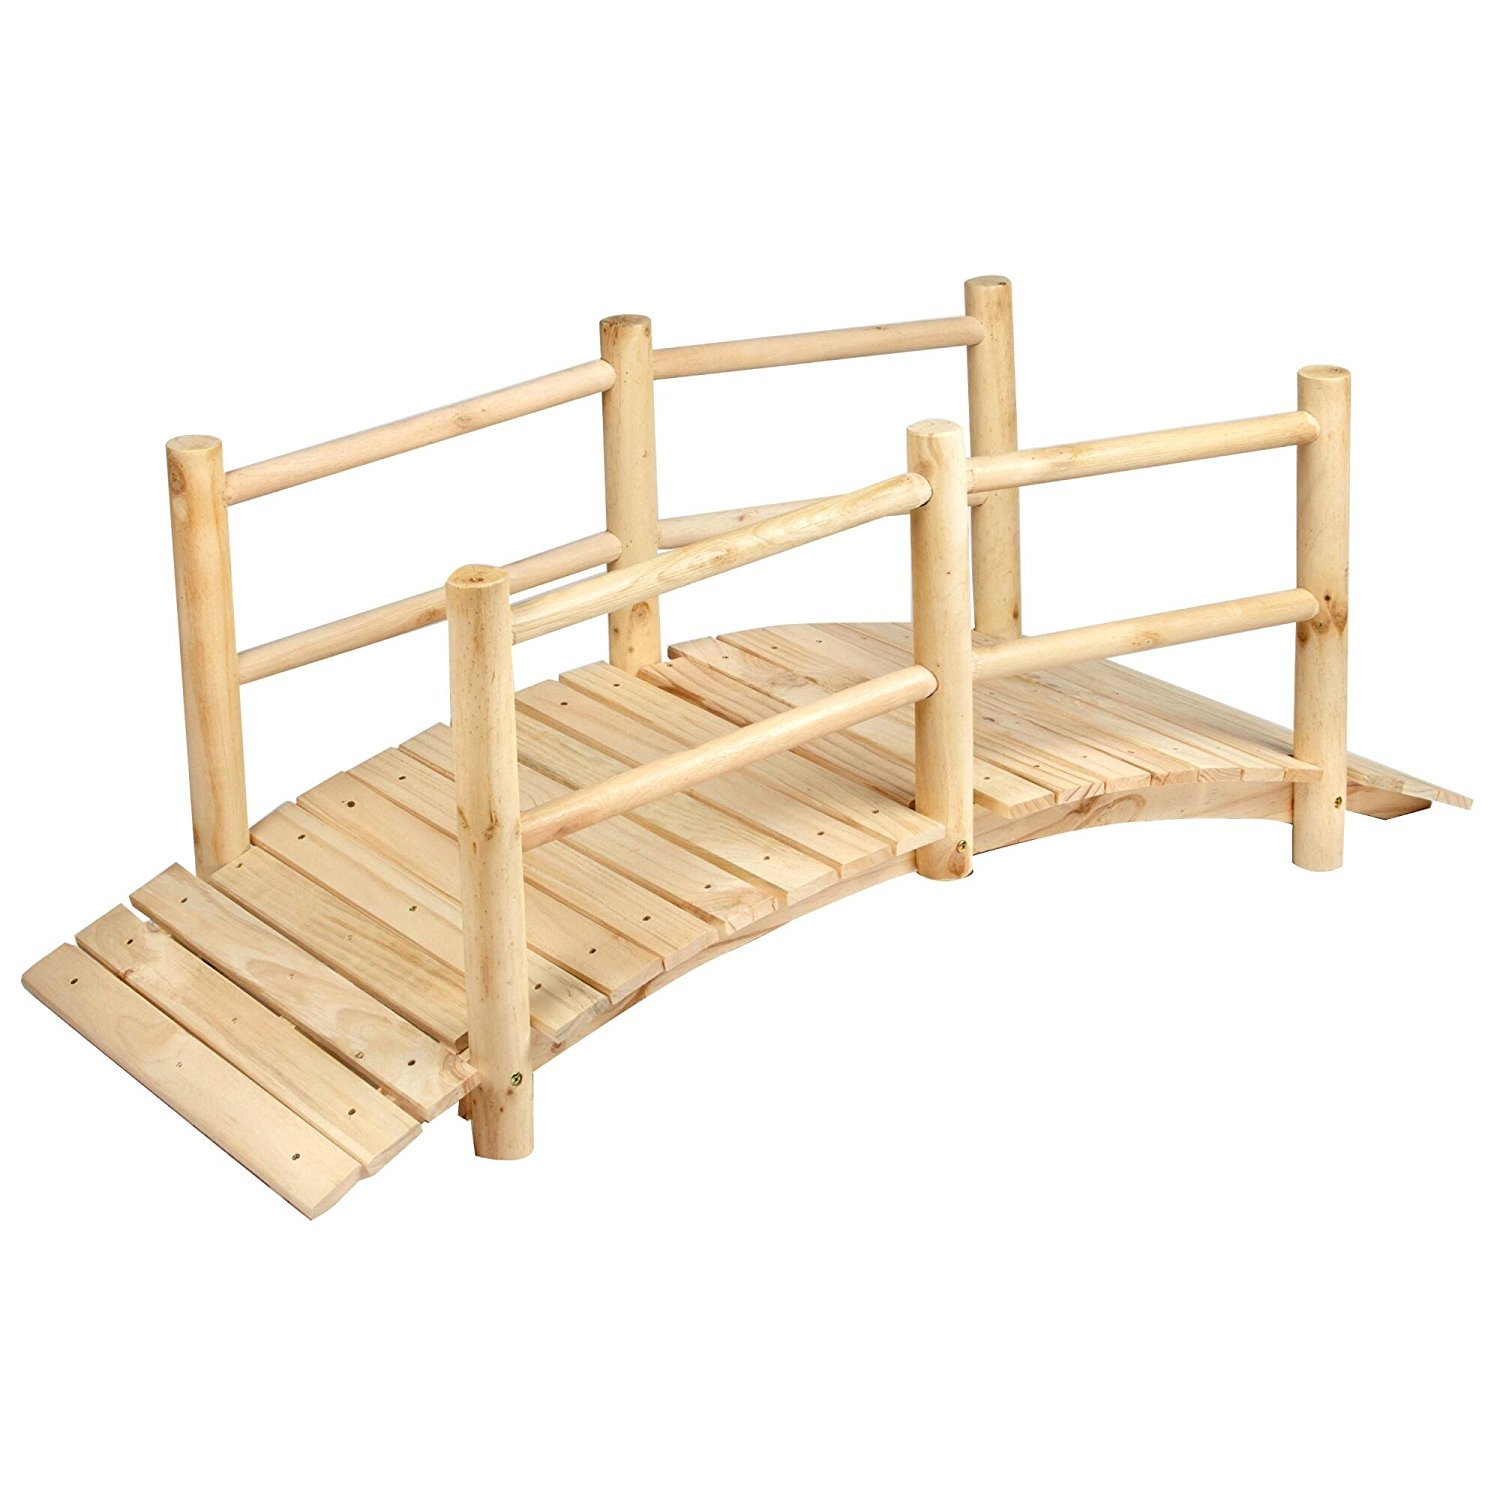 5 Foot Wooden Bridge - Solid Pine